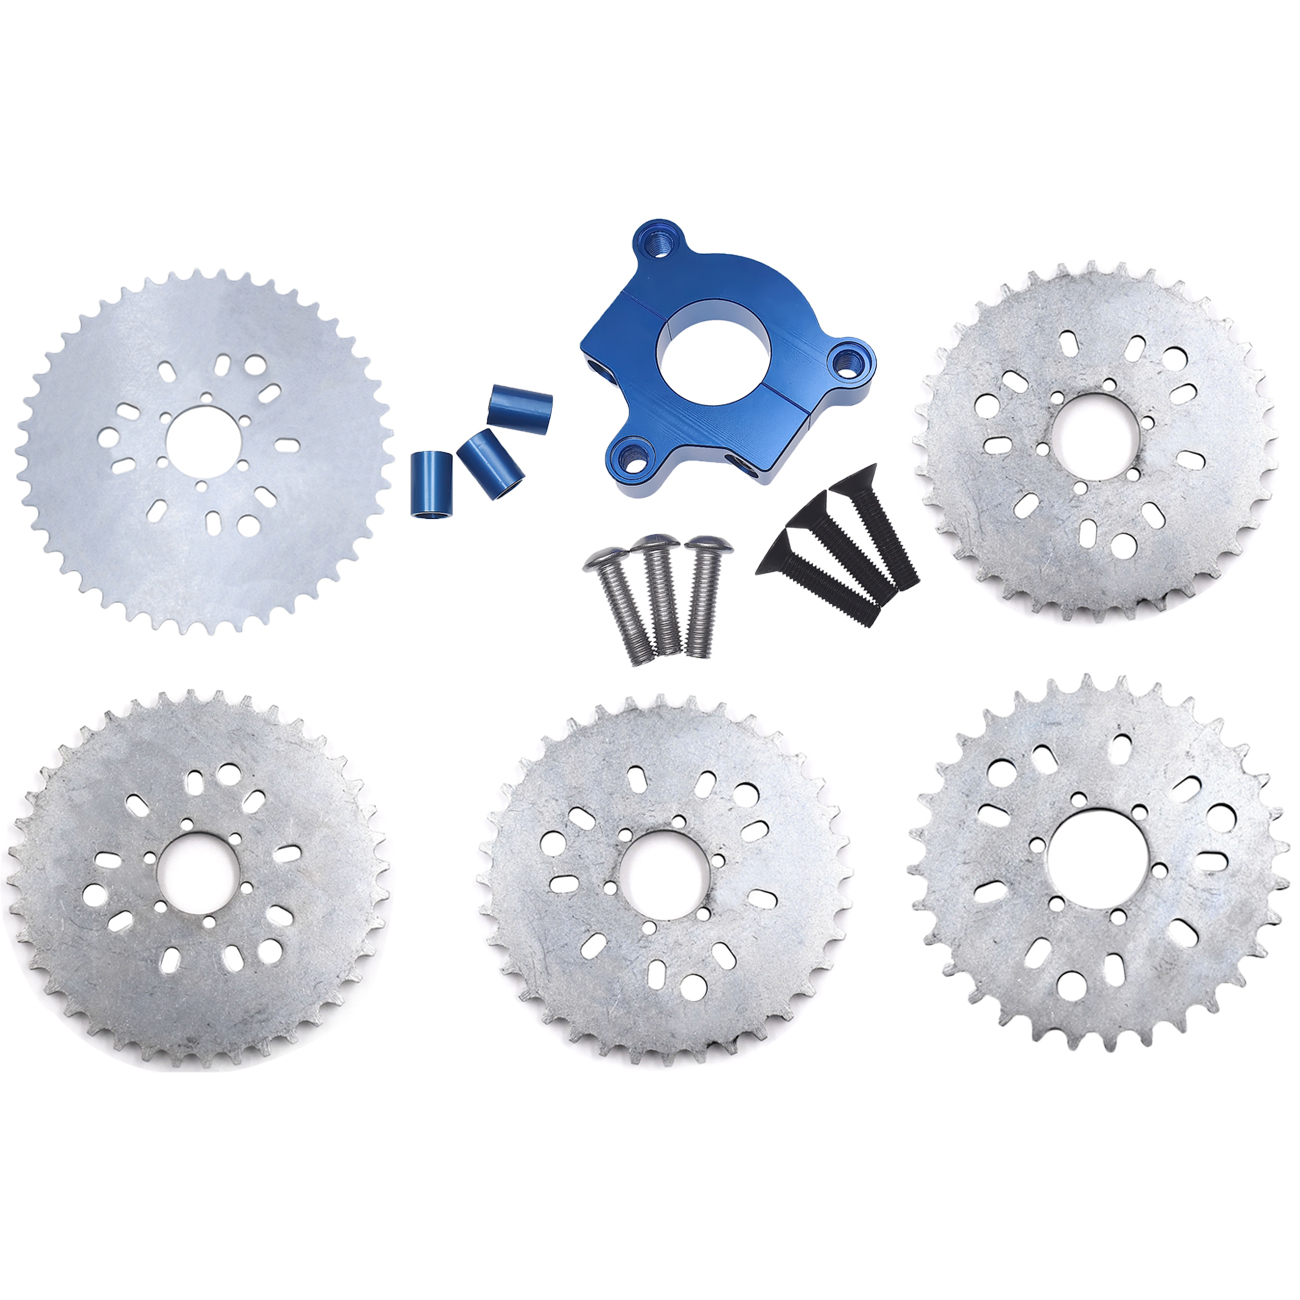 Pouvoir 32T 36T <font><b>38T</b></font> 40T 44T <font><b>Sprocket</b></font> Blue CNC Adaptor For 415 Chain Motorized Bike Bicycle image